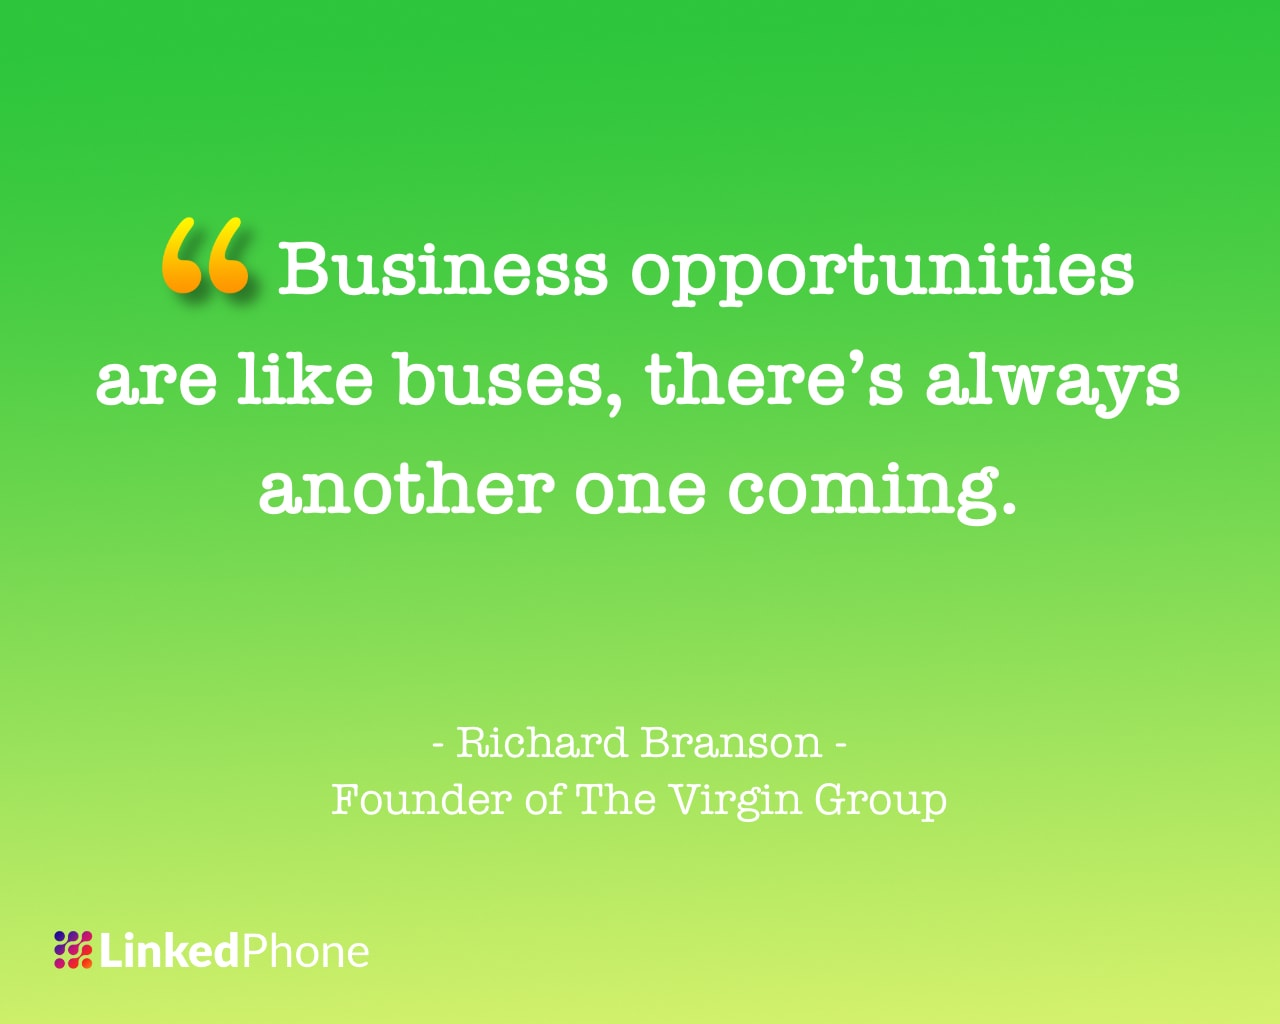 Richard Branson - Motivational Inspirational Quotes and Sayings